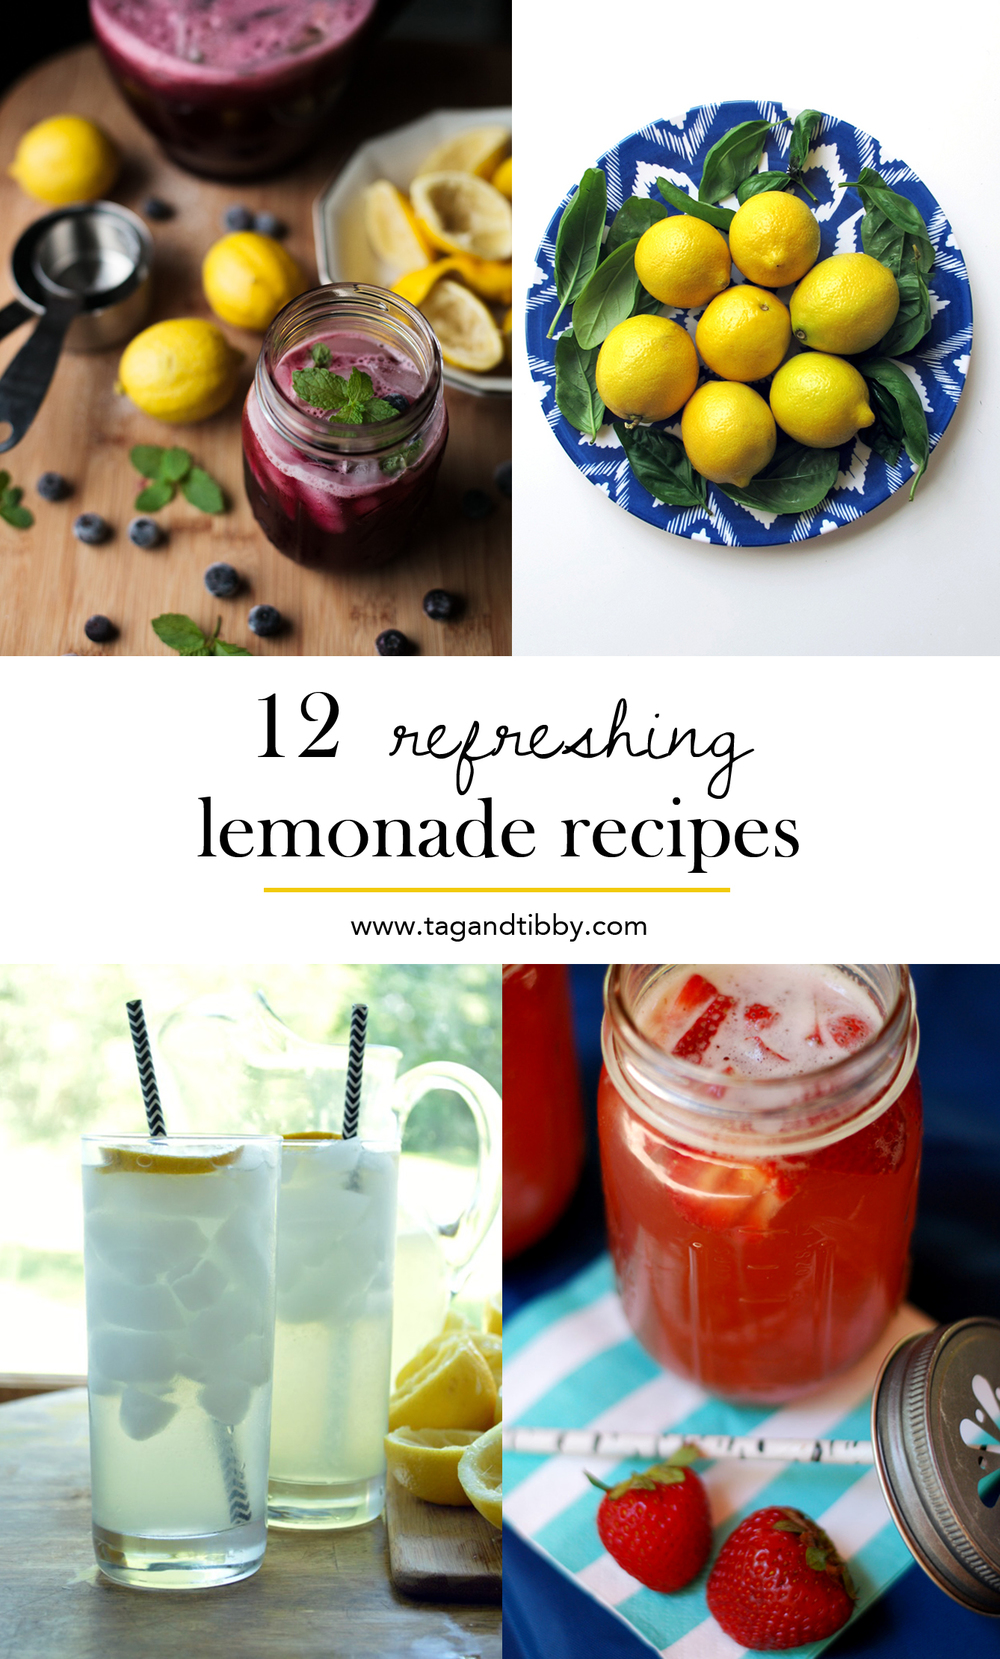 12 refreshing homemade lemonade recipes, perfect on a hot summer day!